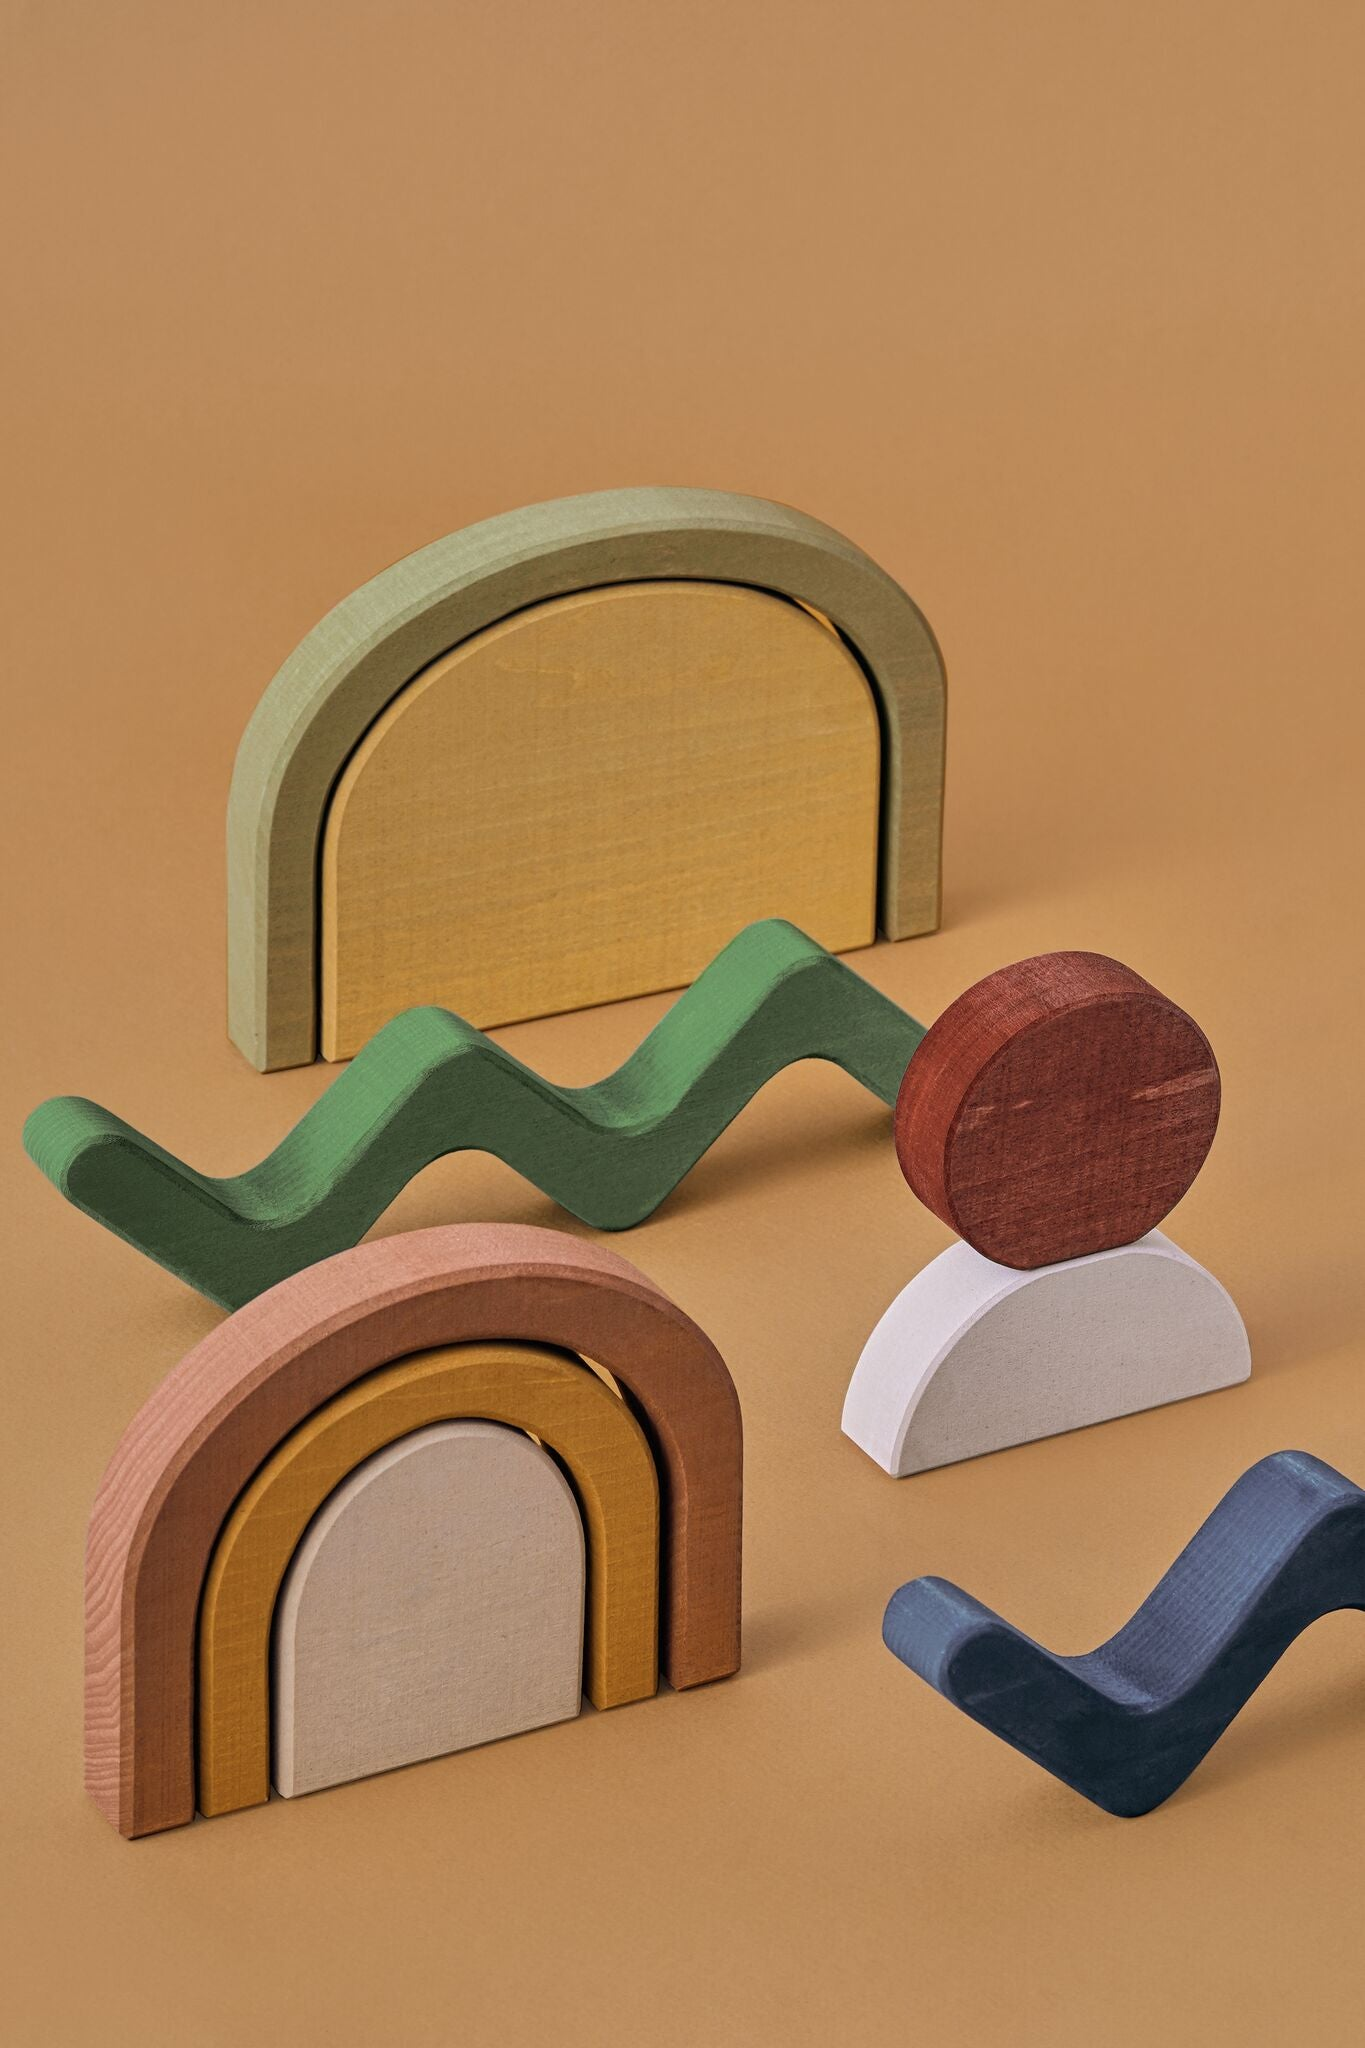 Raduga Grez Building Blocks, Shapes